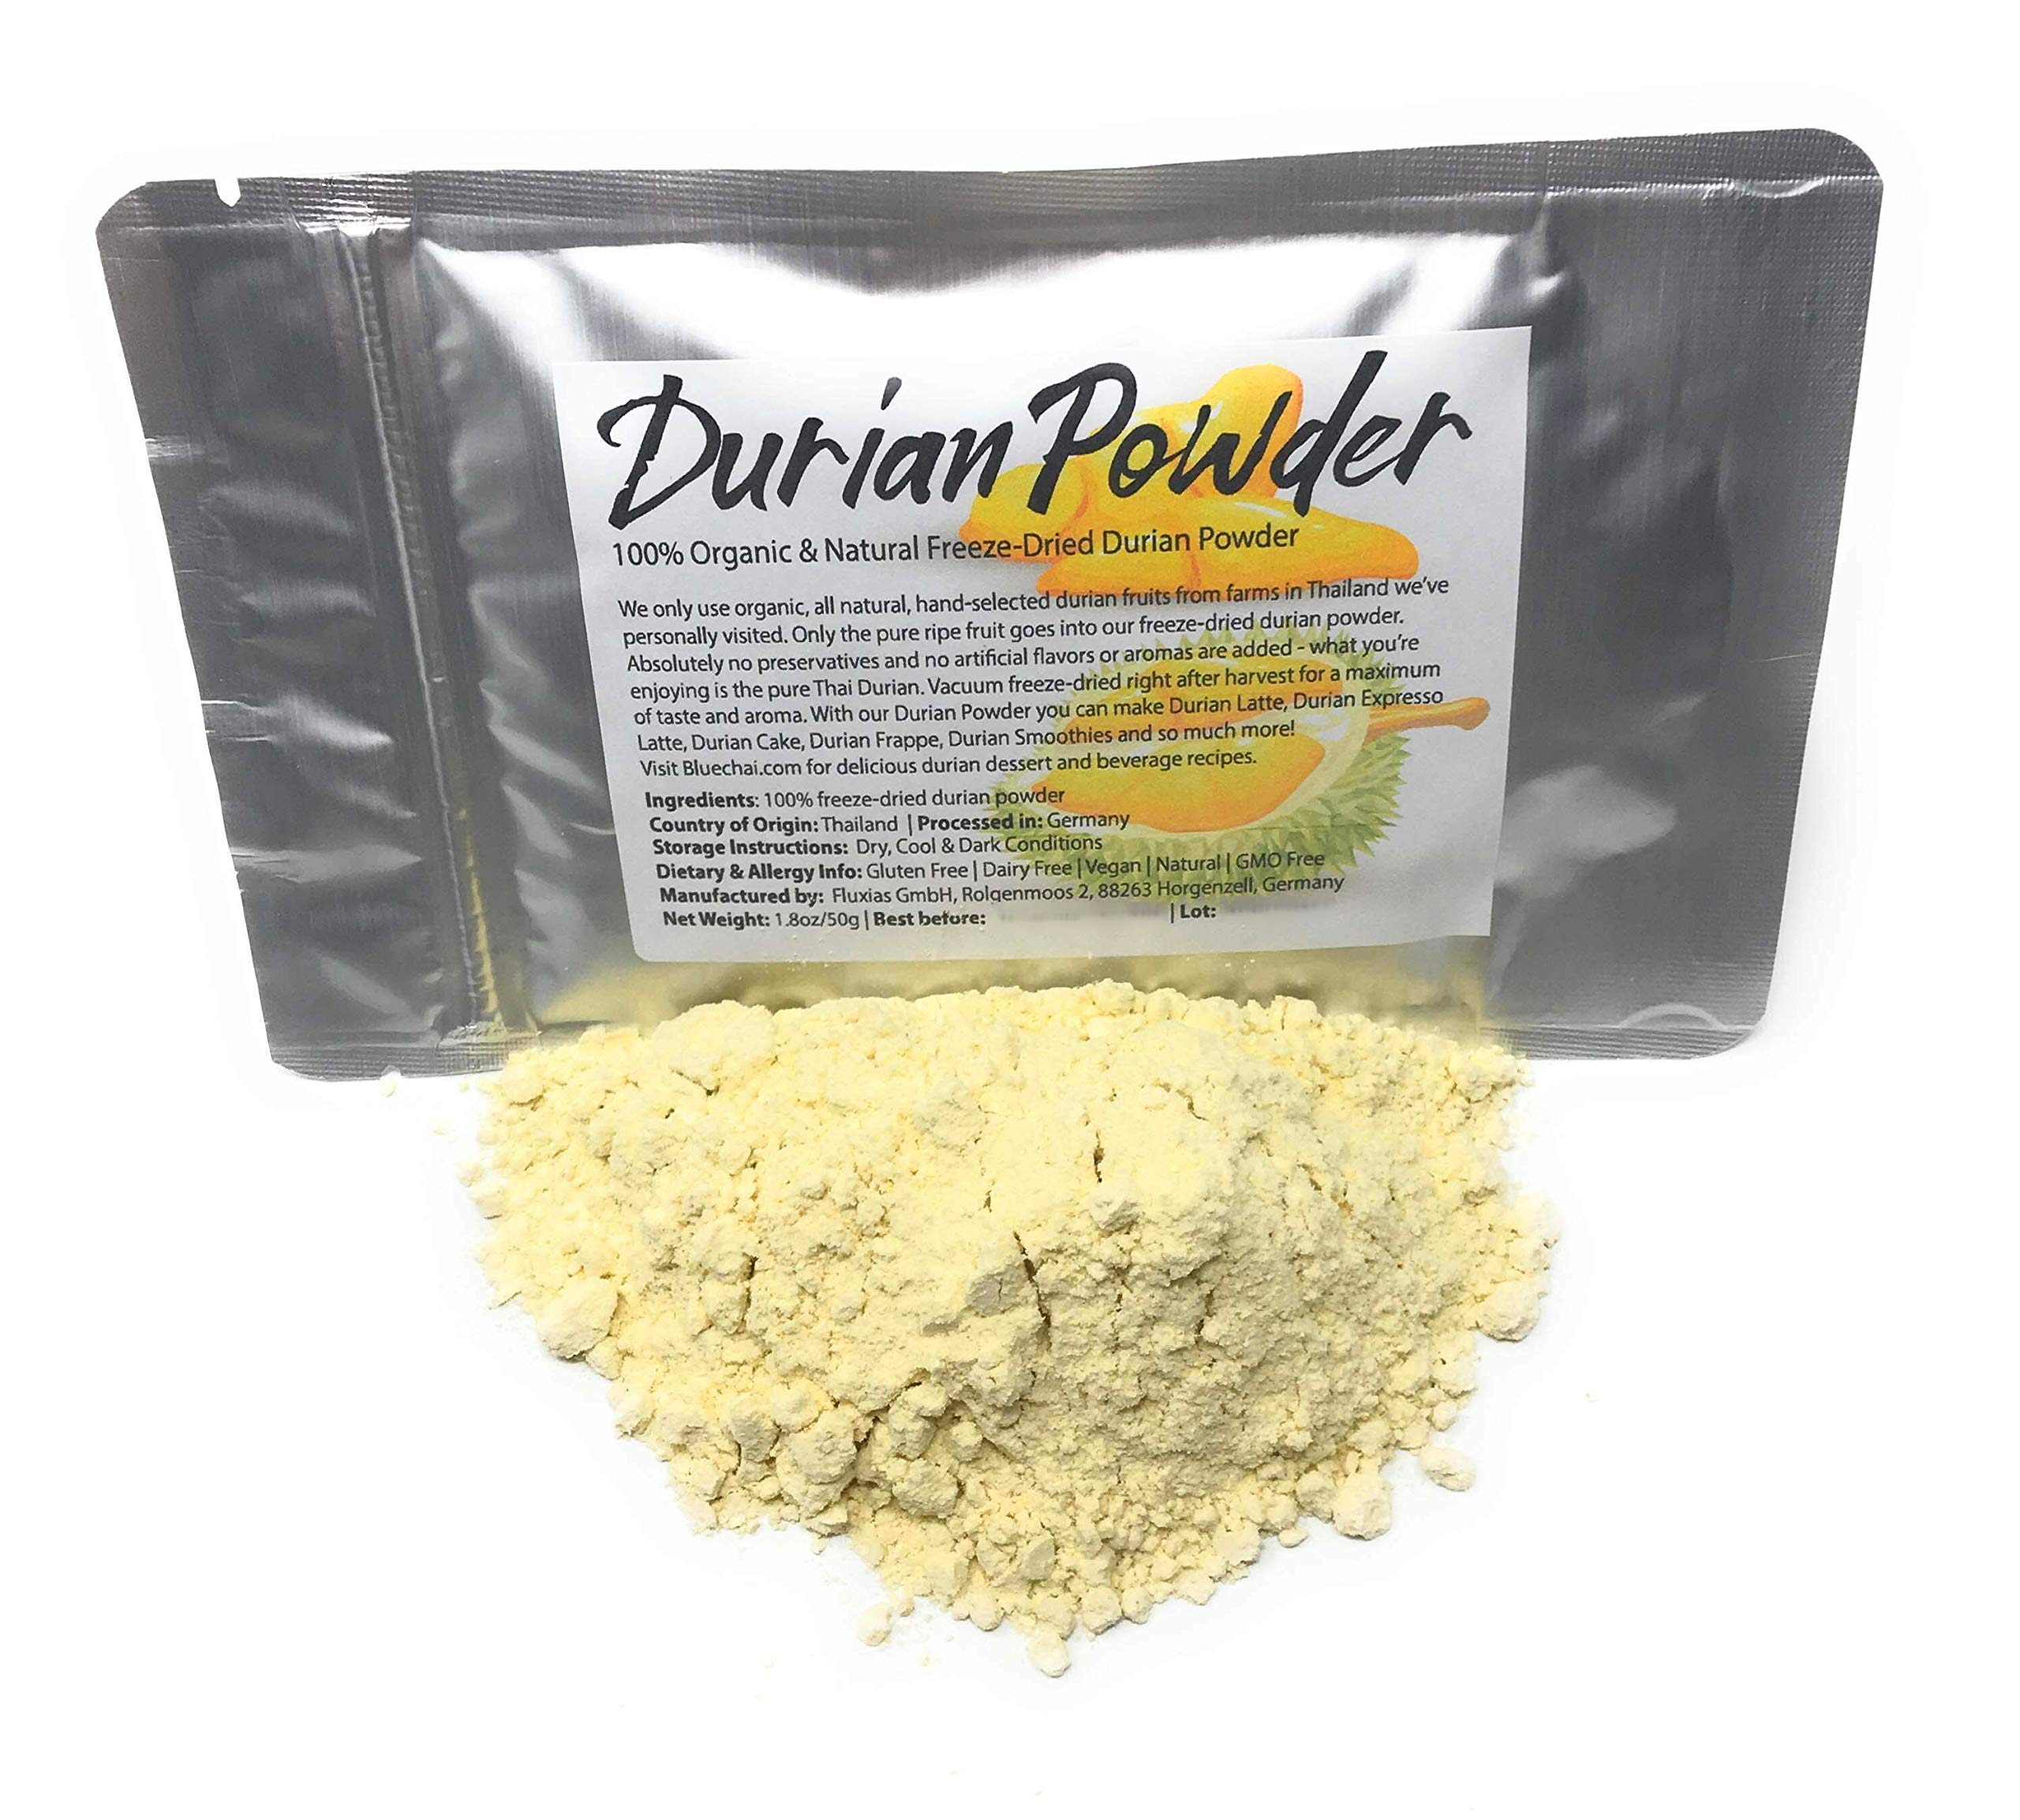 Durian Powder made from real, 100% pure Durian Fruit Pulp - Organic & Natural Freeze-Dried Durian Powder - Perfect for Beverages, Cakes and Culinary Delights, Grade AAA | 1.8oz/50g